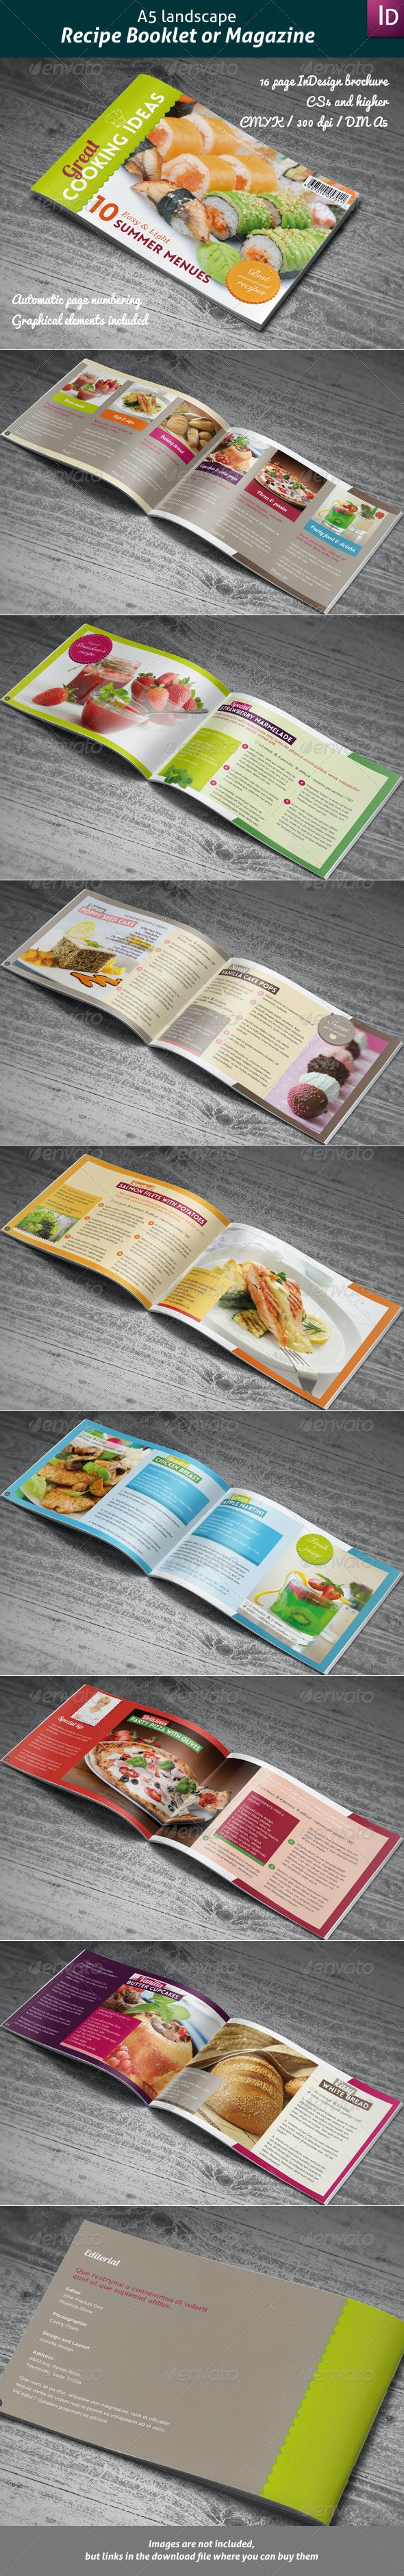 Recipes Booklet or Magazine - Informational Brochures